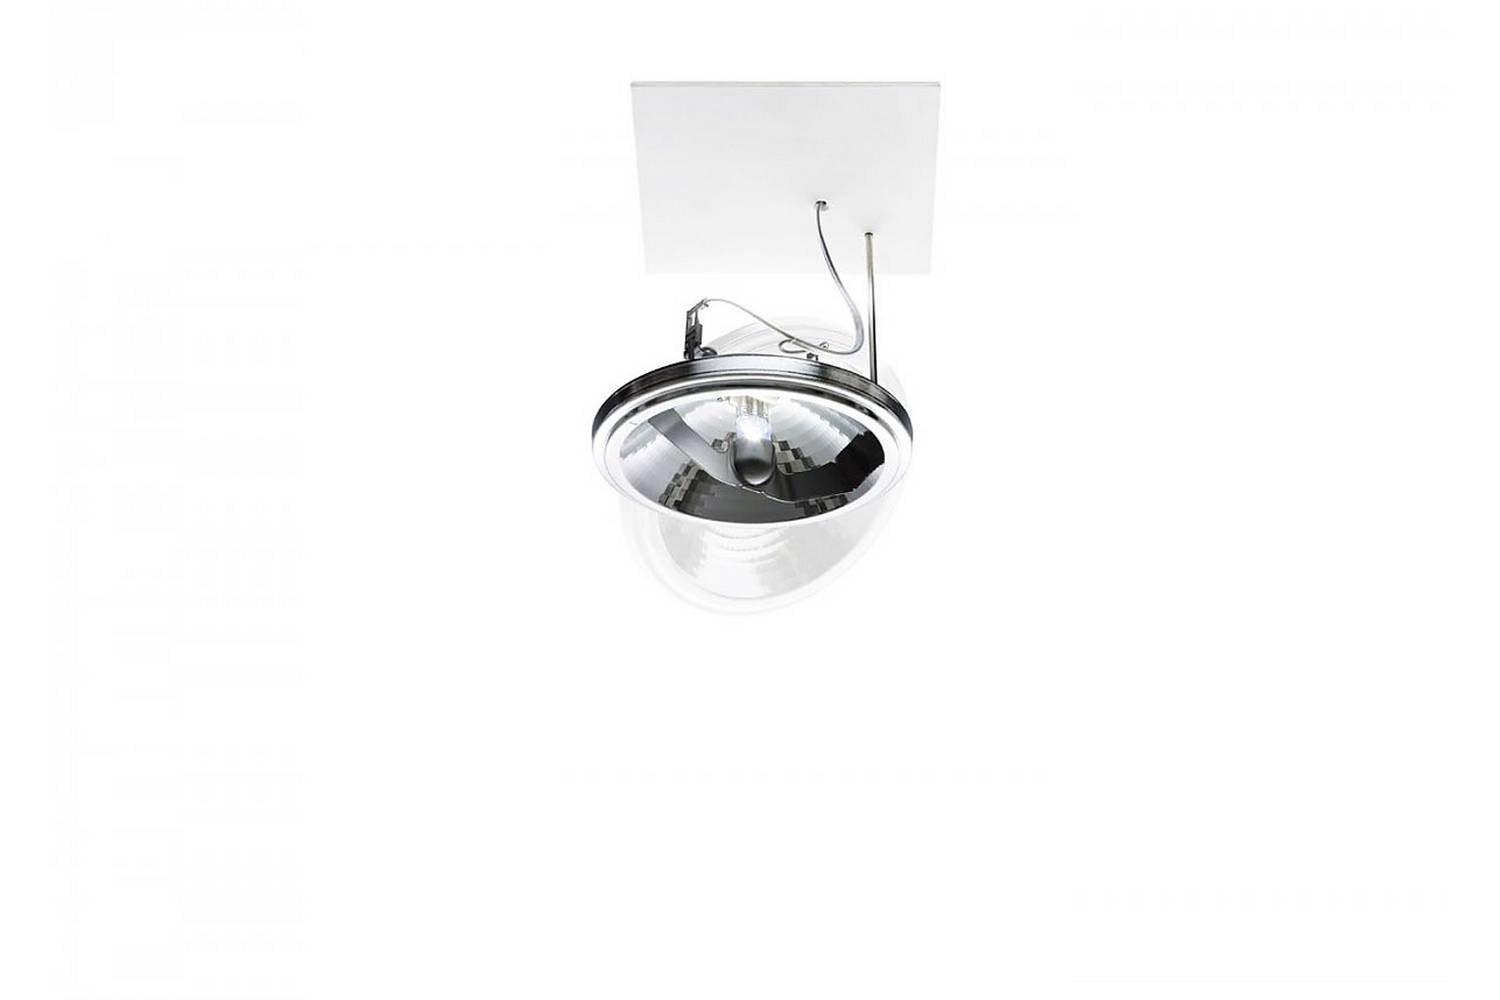 Use Me C. Ceiling Lamp by Ingo Maurer und Team for Ingo Maurer